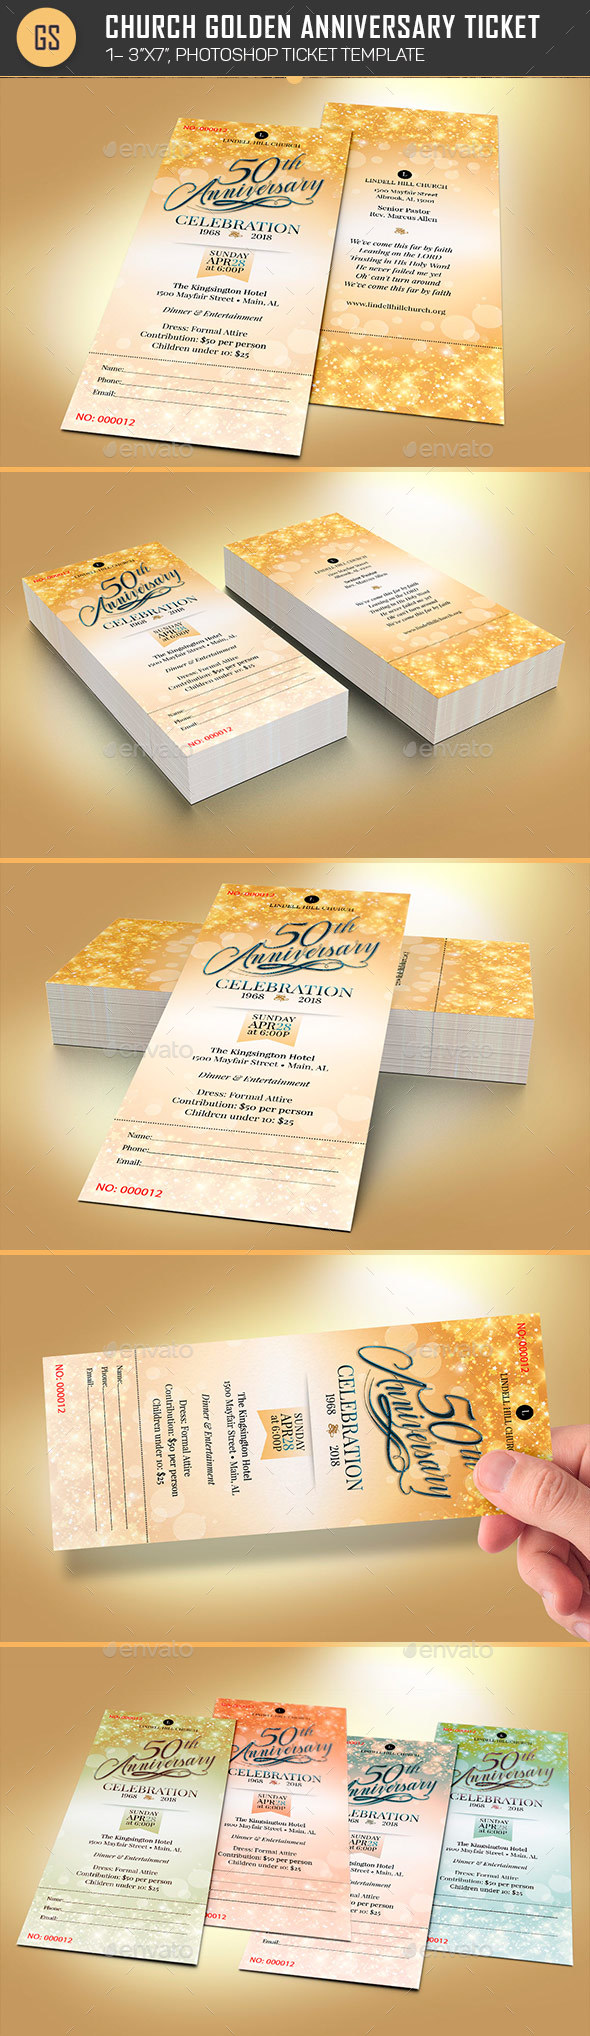 Church Golden Anniversary Ticket Template - Miscellaneous Print Templates